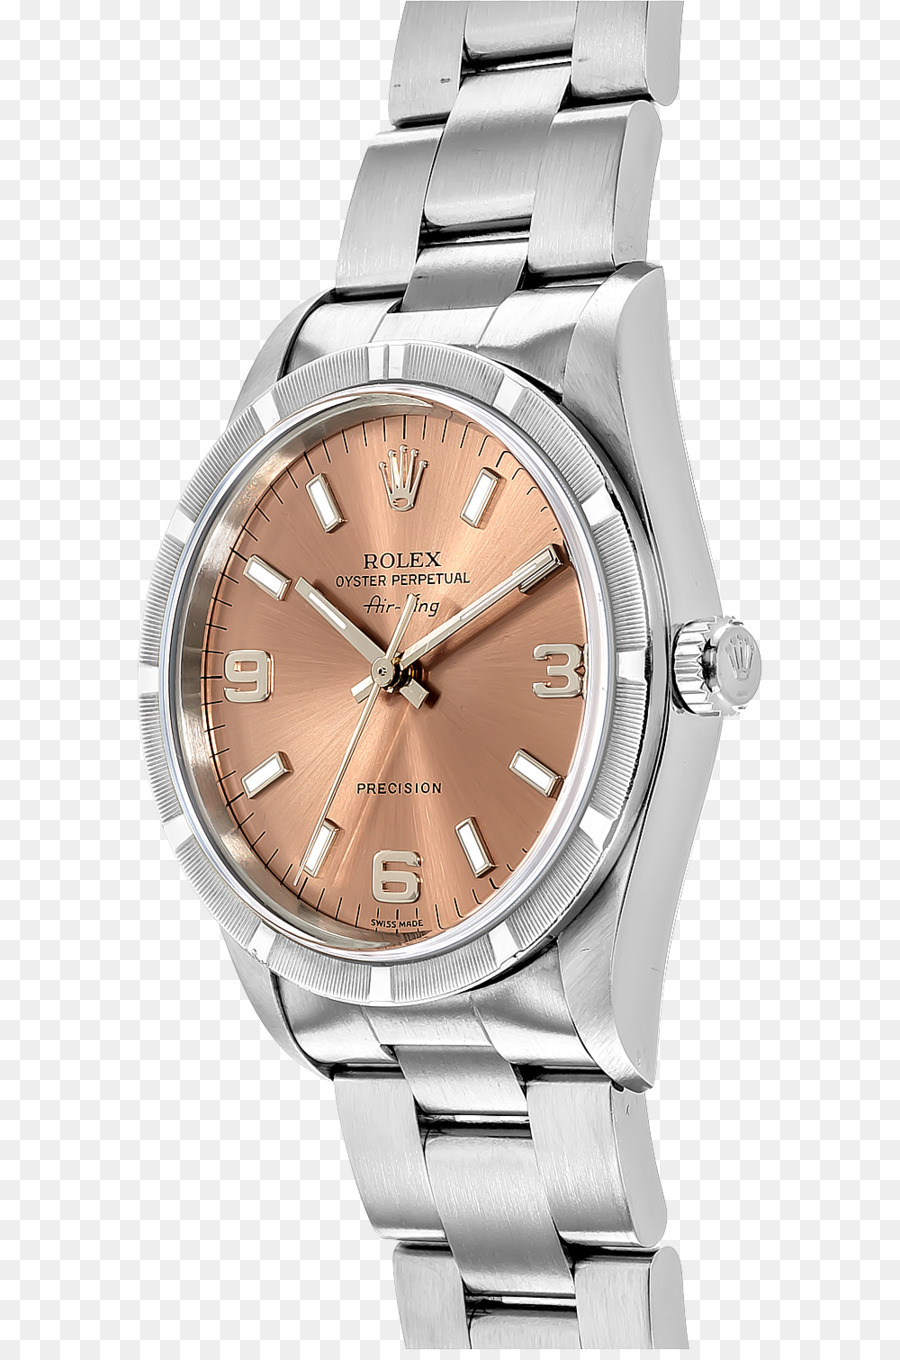 Rolex Oyster Watch strap Certified Pre-Owned - rolex png